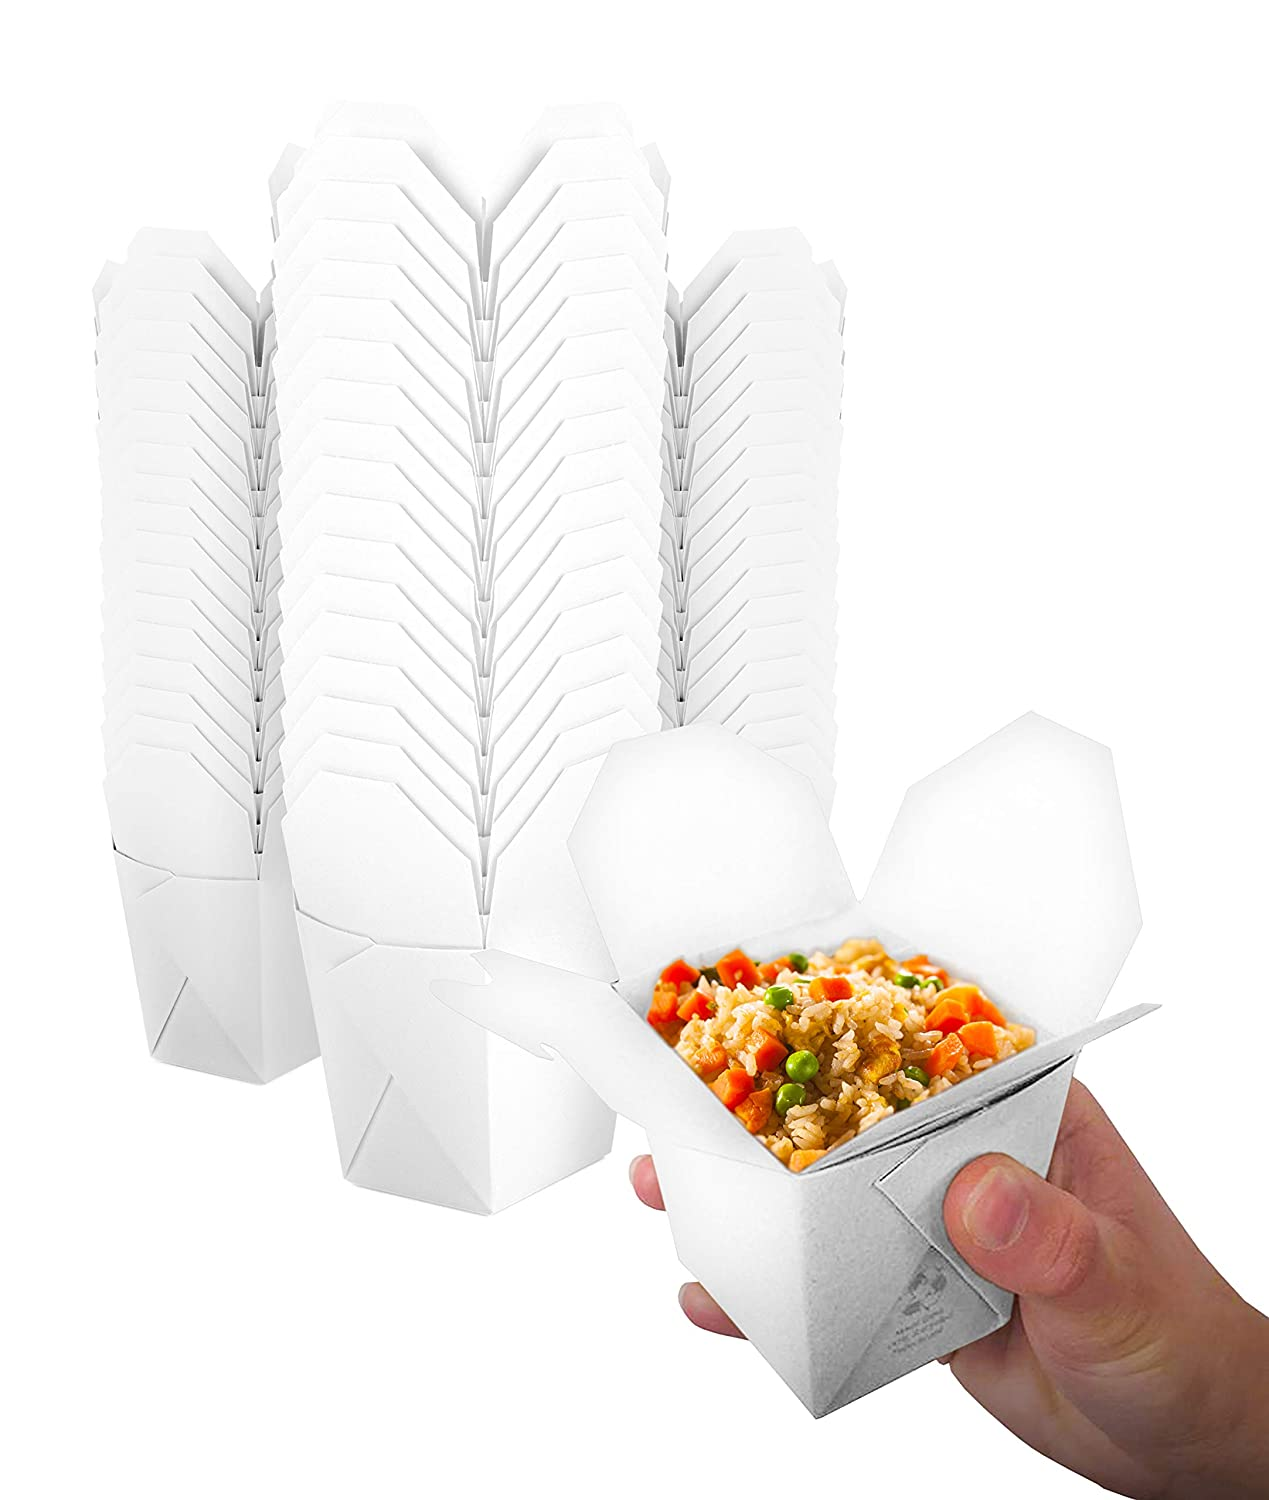 Takeout Food Containers 8 Oz White Microwaveable Mini Chinese Take Out Box (50 Pack) Leak and Grease Resistant Stackable to Go Boxes - Recyclable Food Containers - Party Favor Boxes